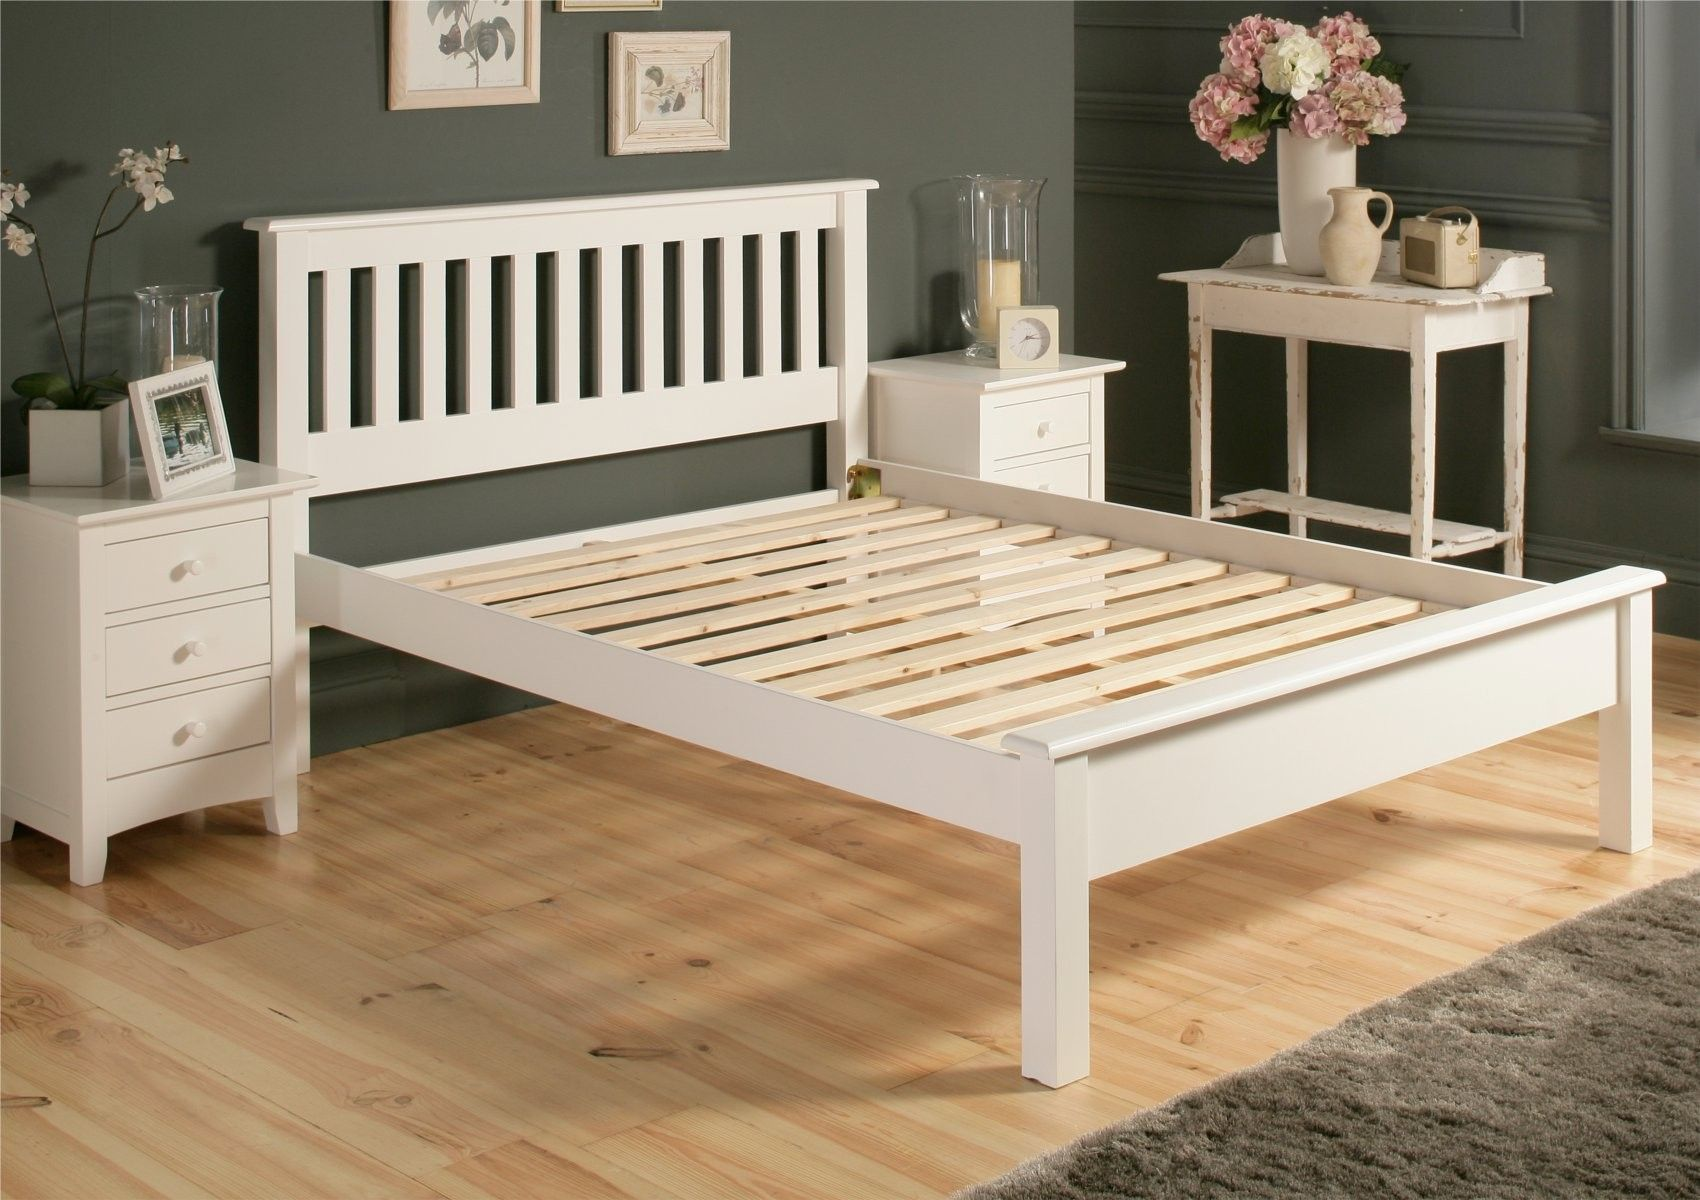 Innovation Design Of White Shaker Bedroom Furniture And Wooden Bed Frame Lfe